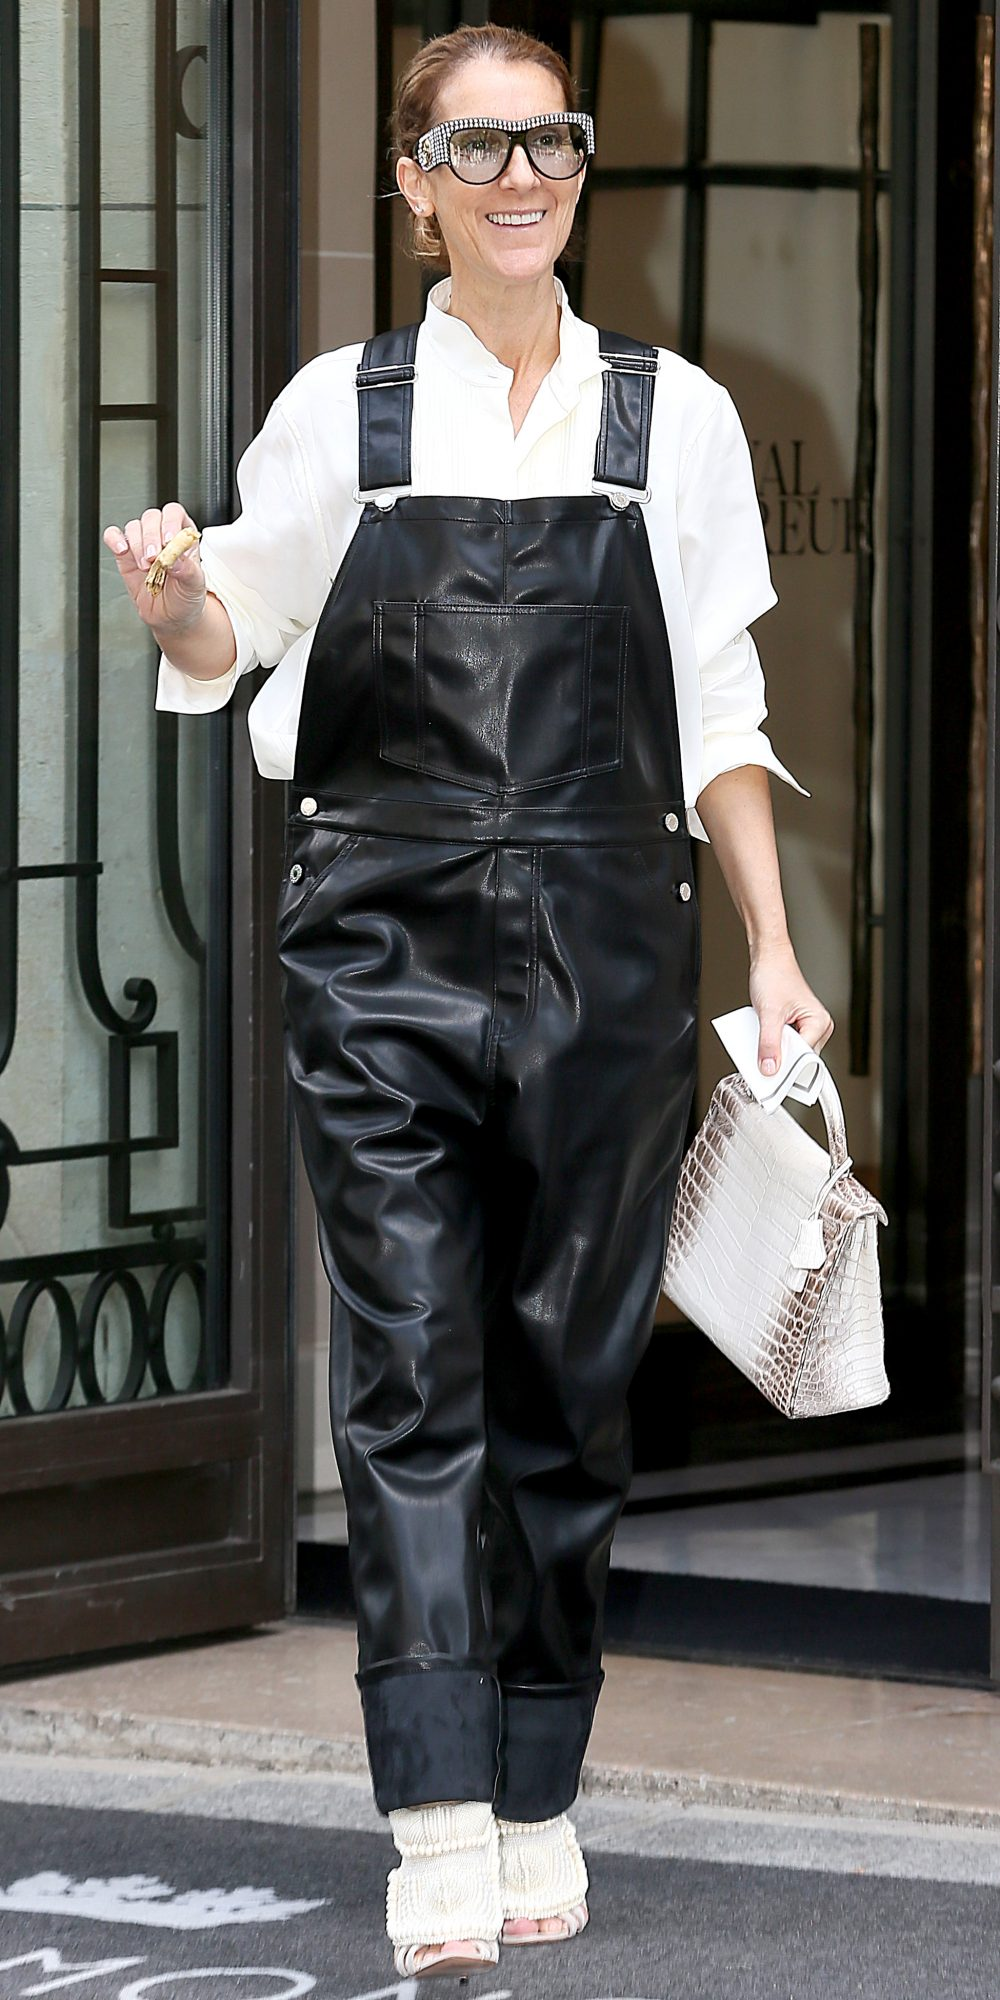 IN BLACK LEATHER OVERALLS